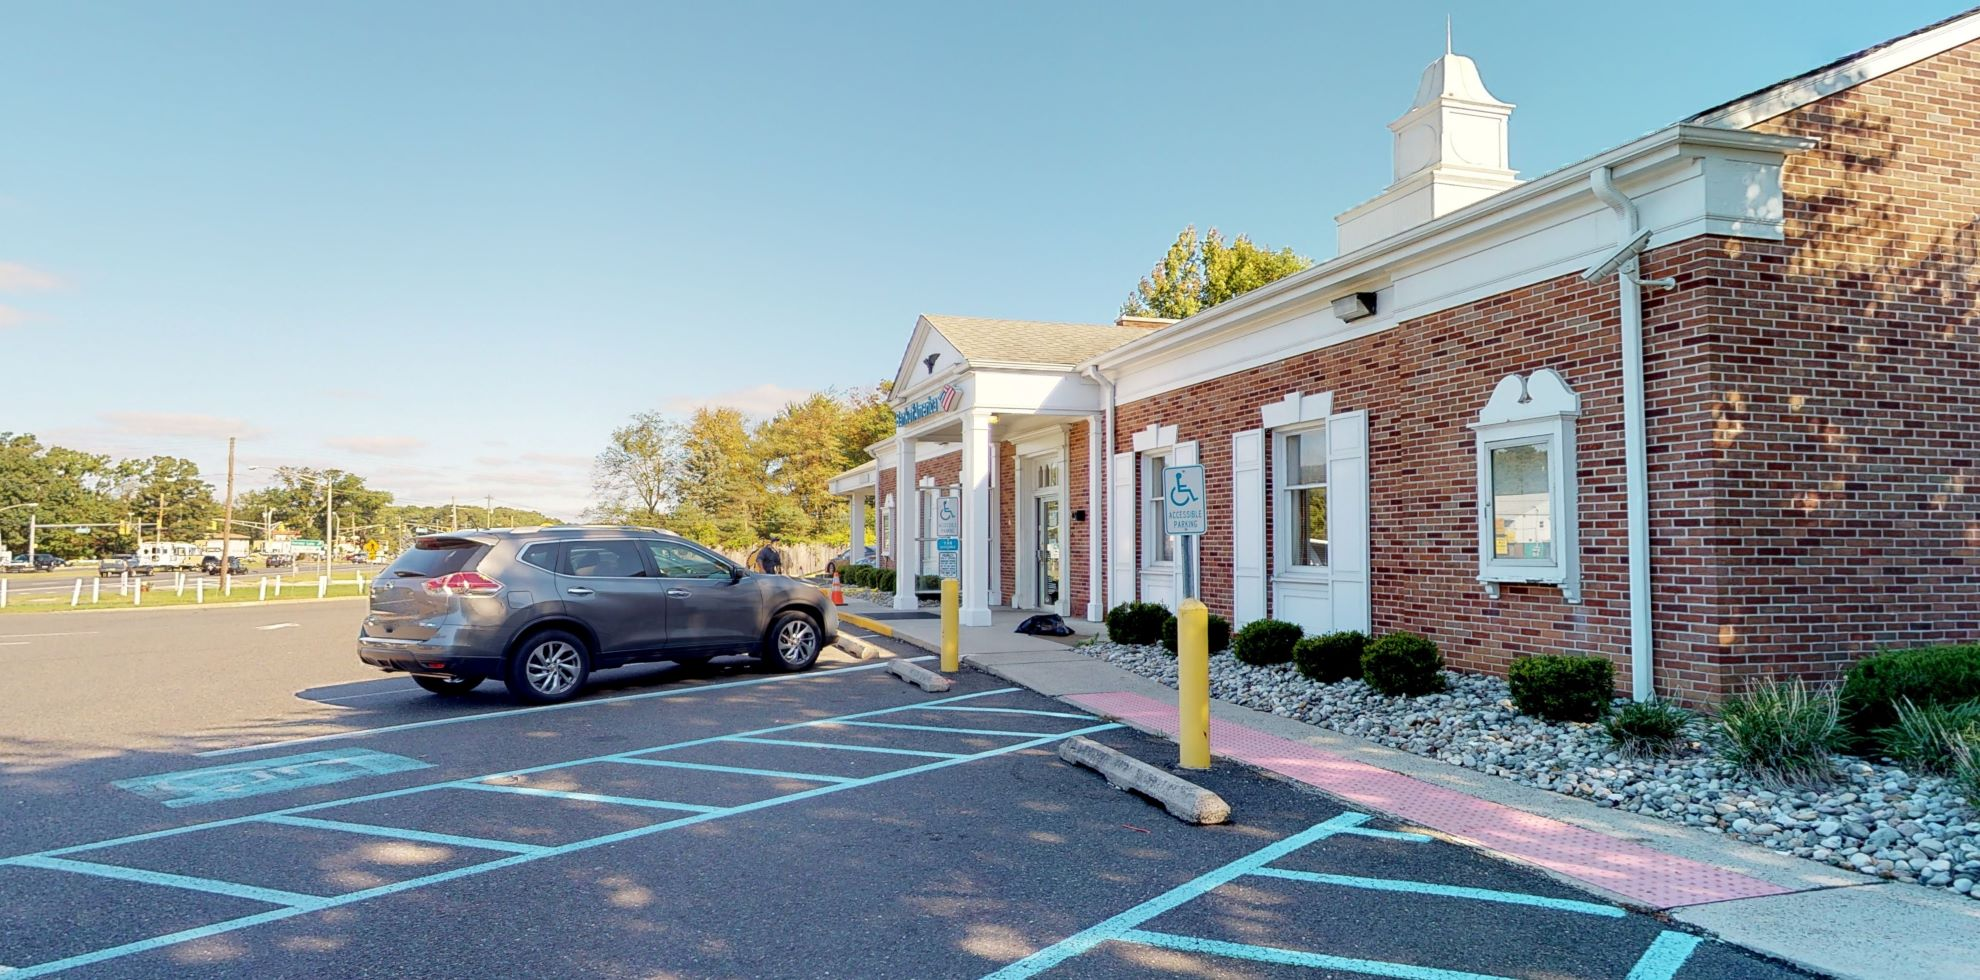 Bank of America financial center with drive-thru ATM   2359 Route 9, Old Bridge, NJ 08857